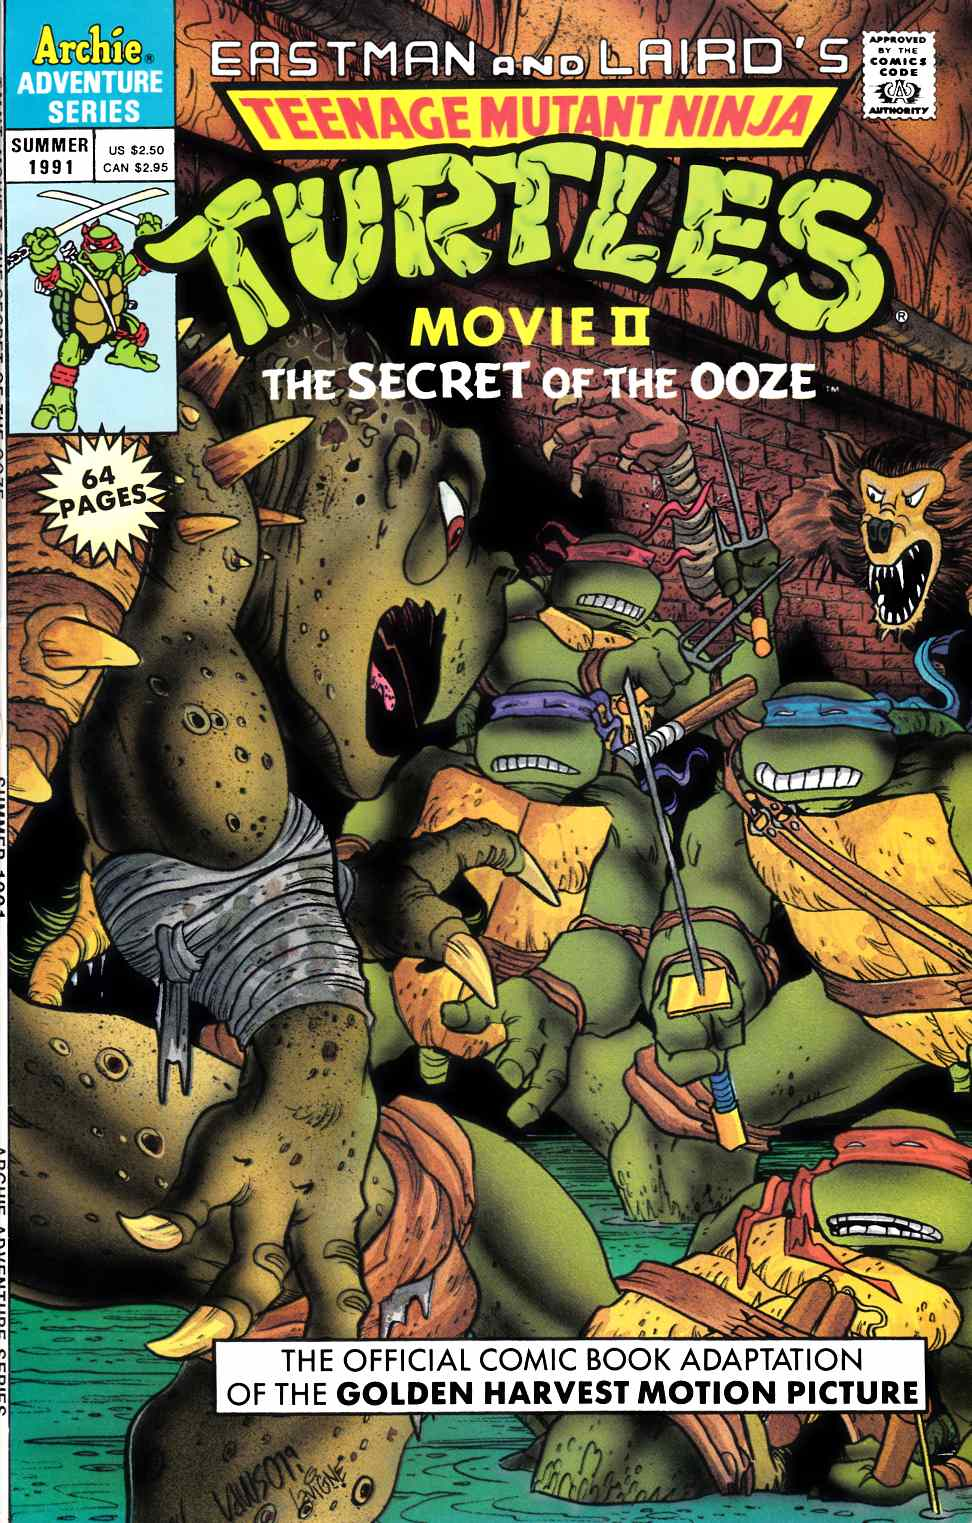 Teenage Mutant Ninja Turtles Movie II #1 Very Fine (8.0) [Archie Comic] THUMBNAIL